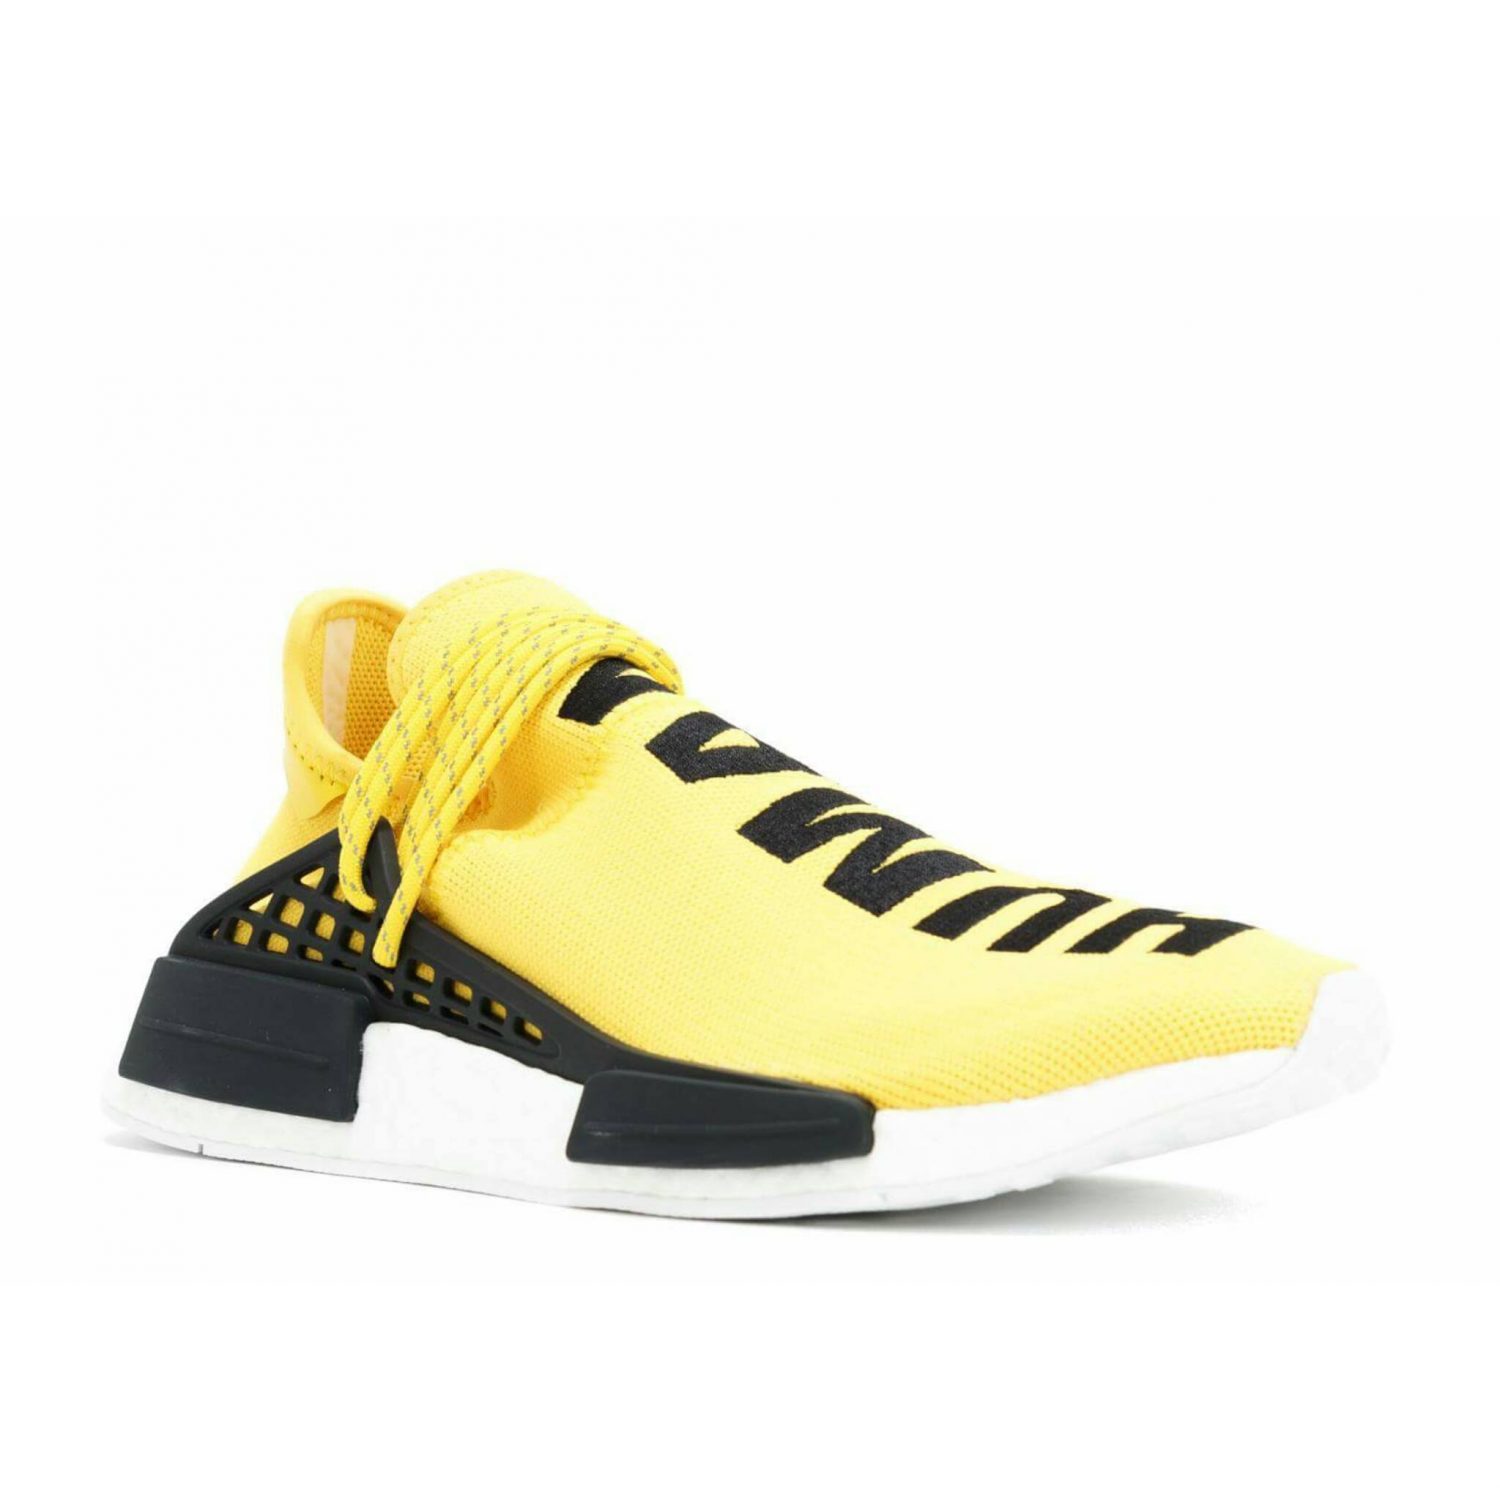 62327f8ab7844 NMD Human Race For Men - Shoes Online Shopping in Pakistan  Sport ...